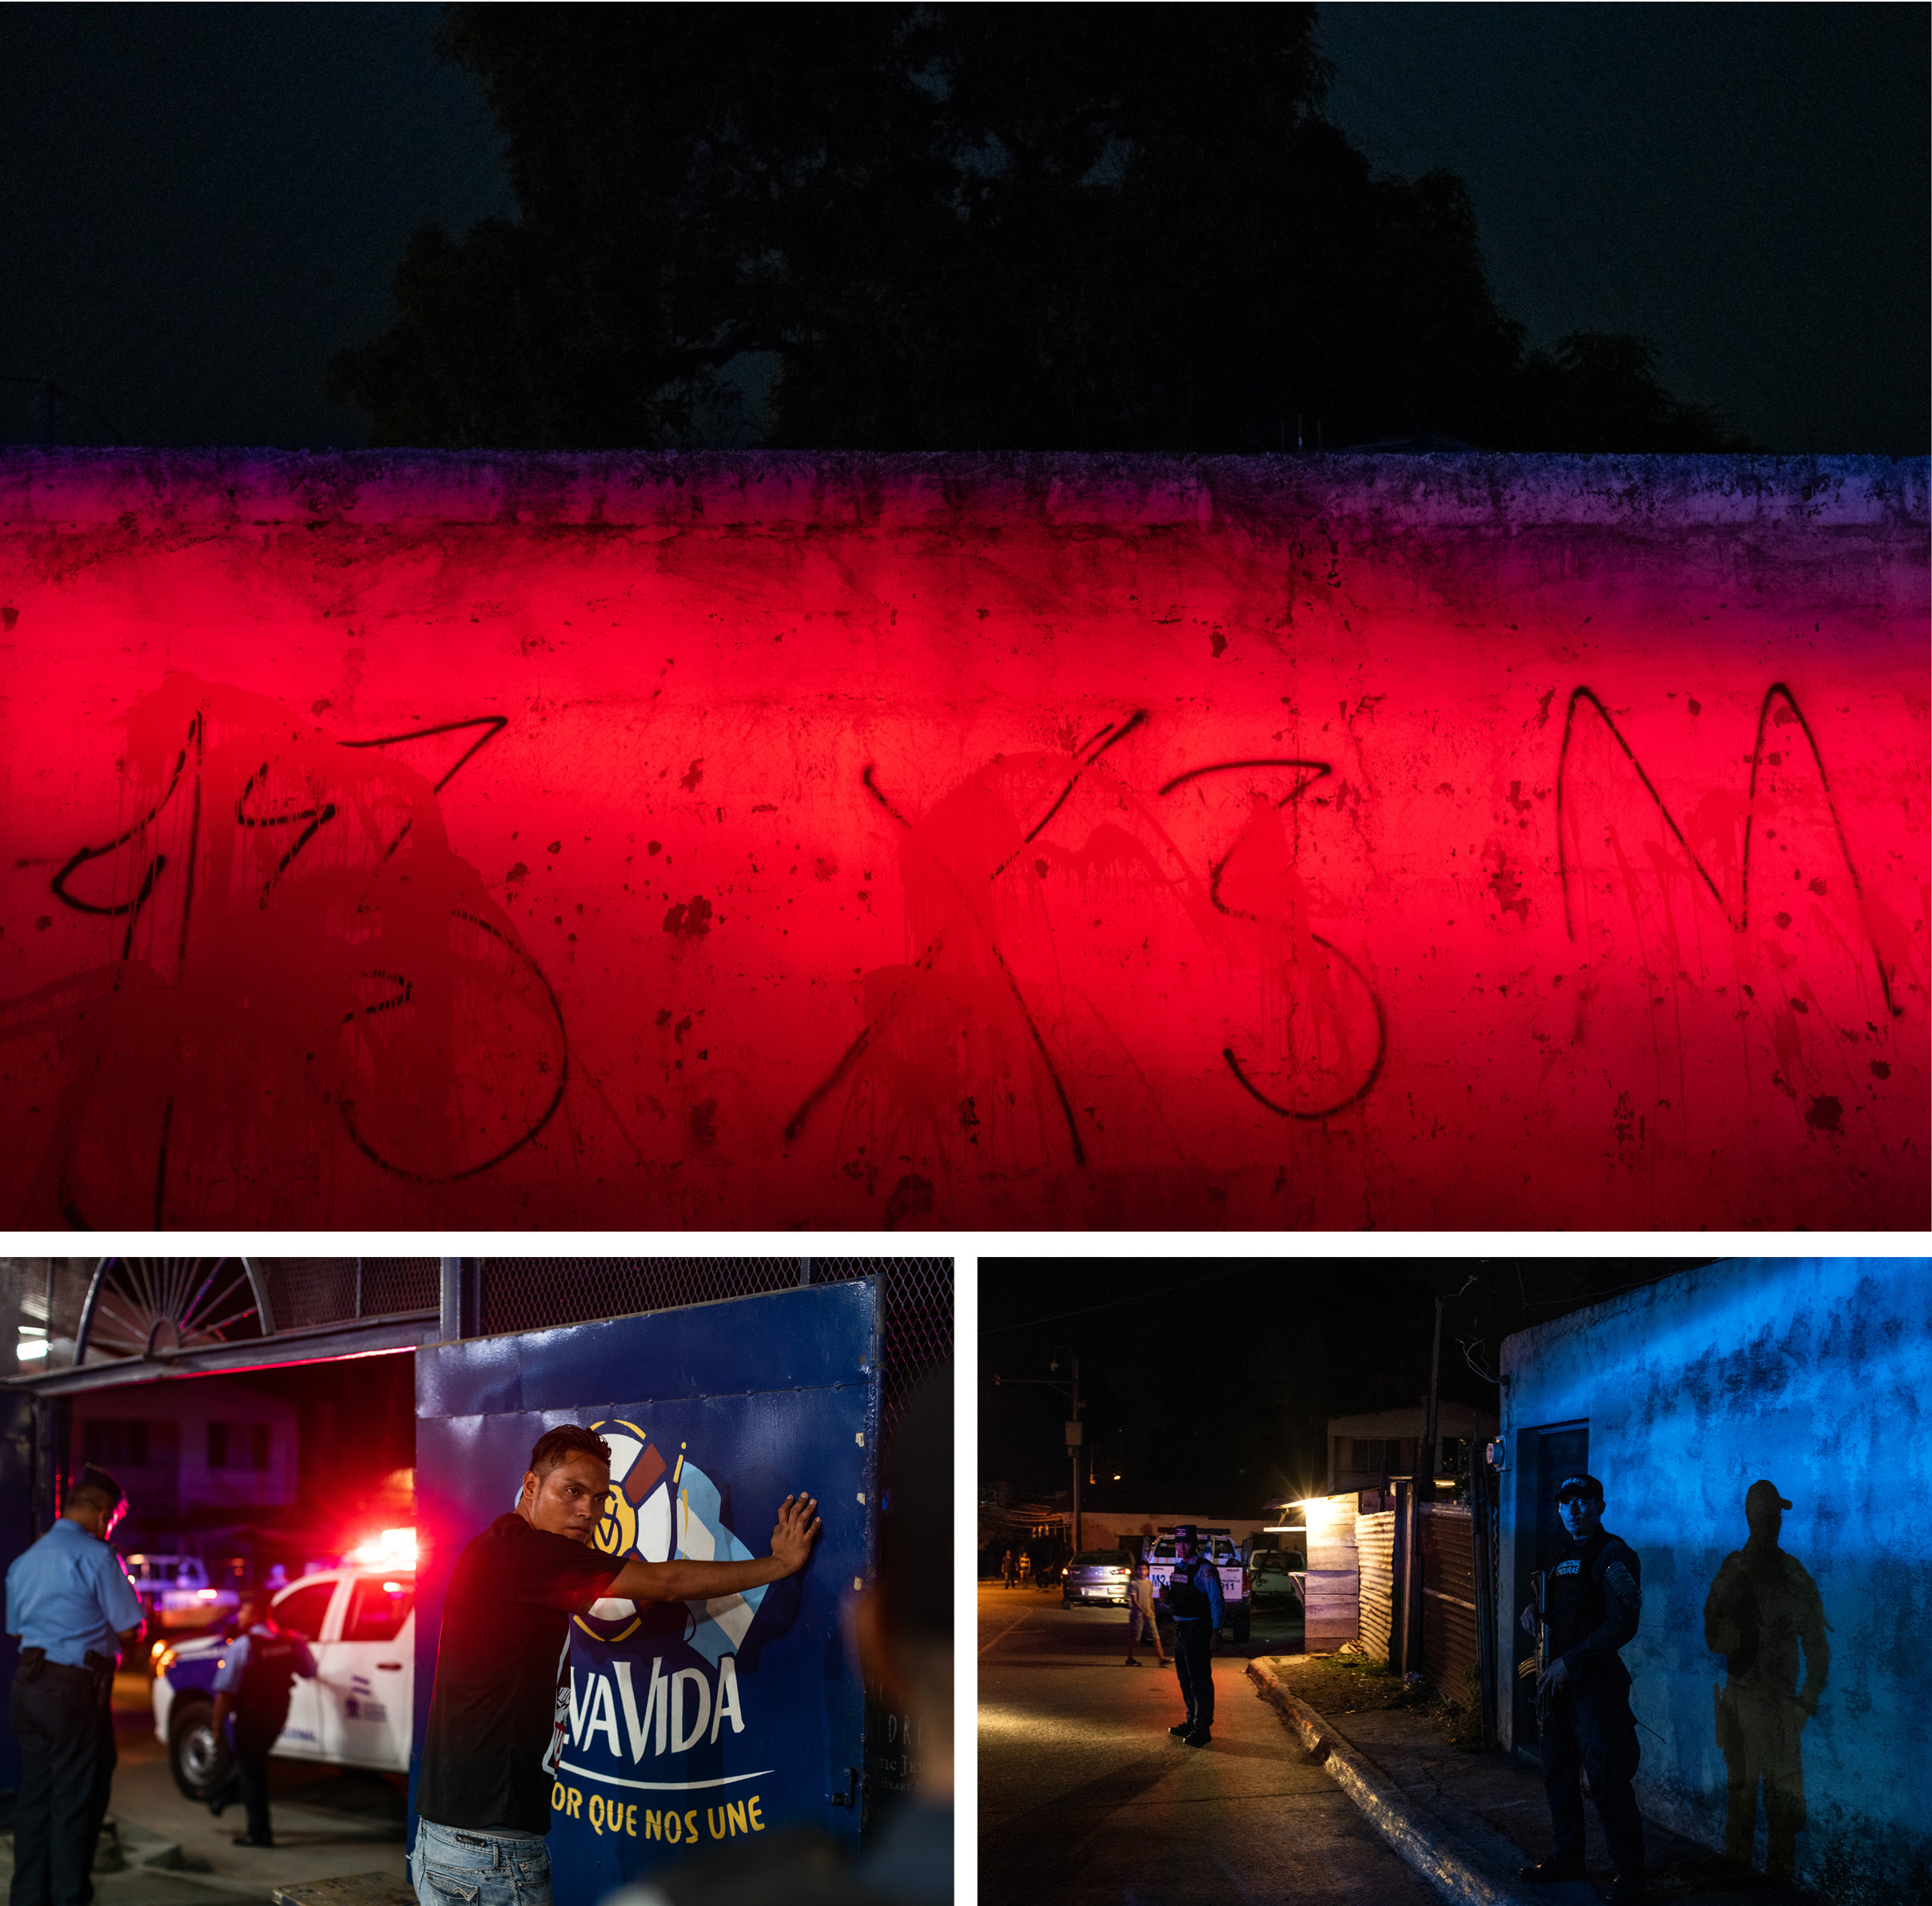 Gang grafitti and policing in Honduras.